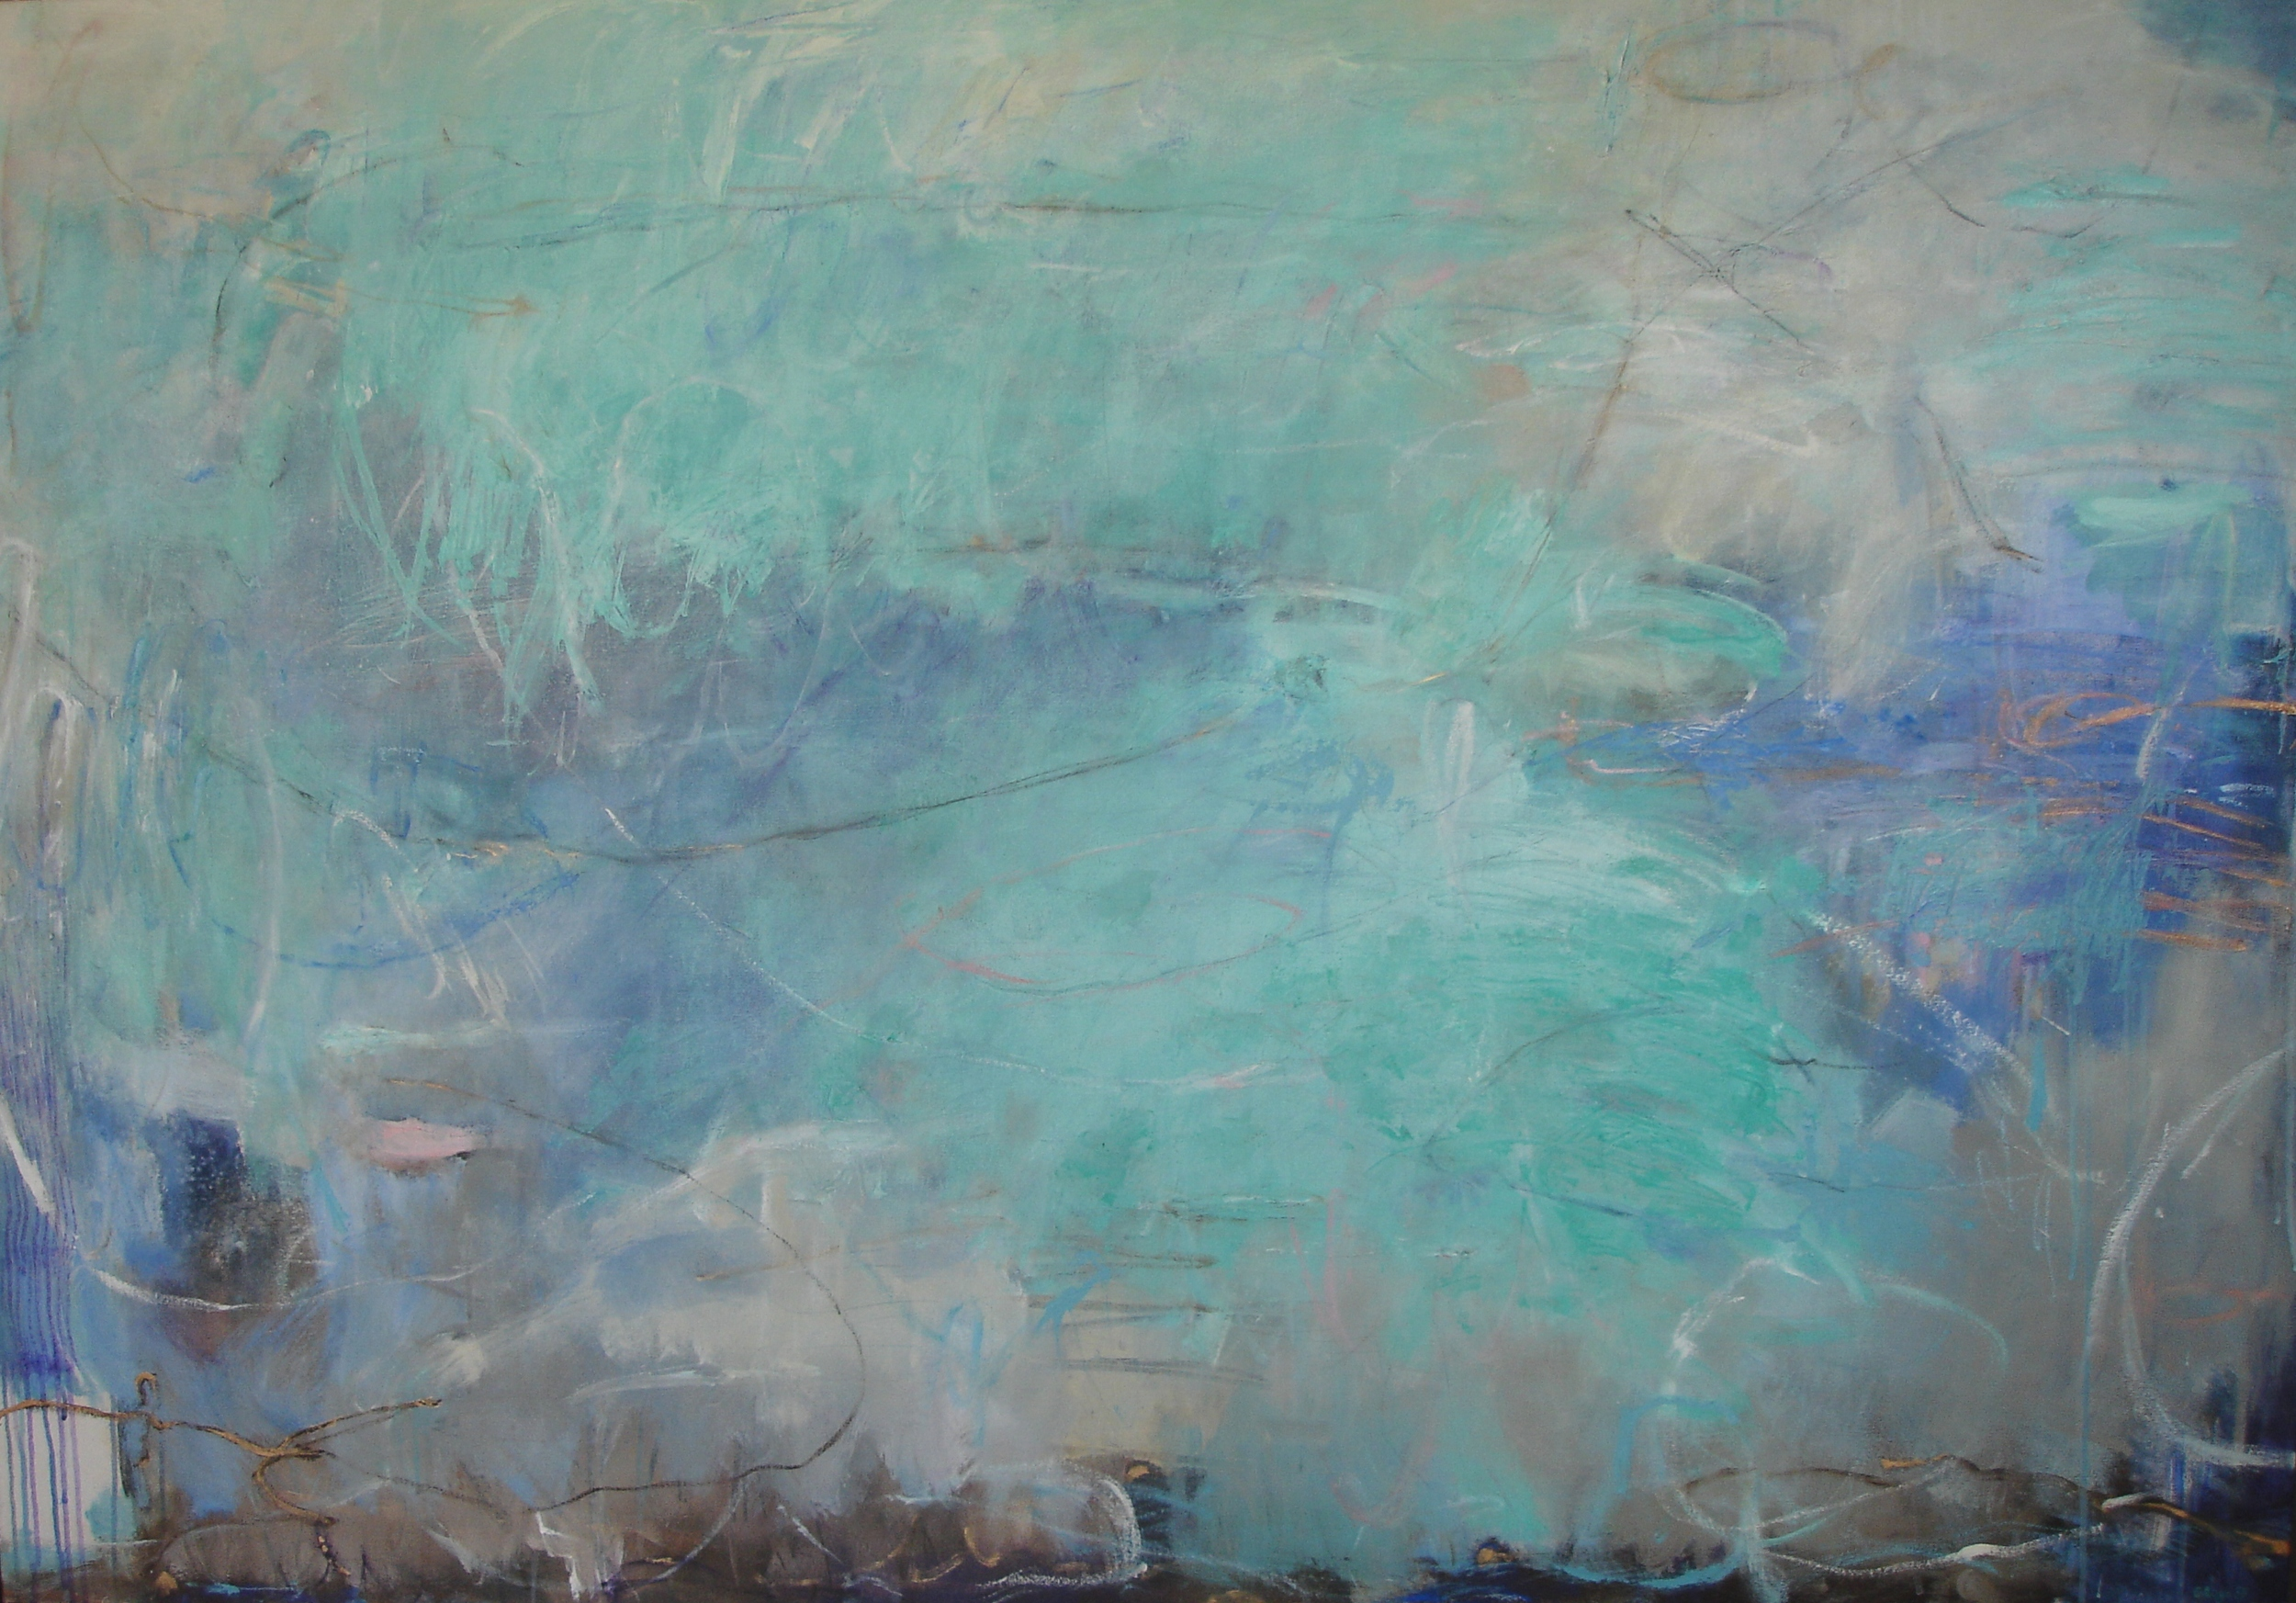 Echoes Beneath the Water, 106 x 152cm